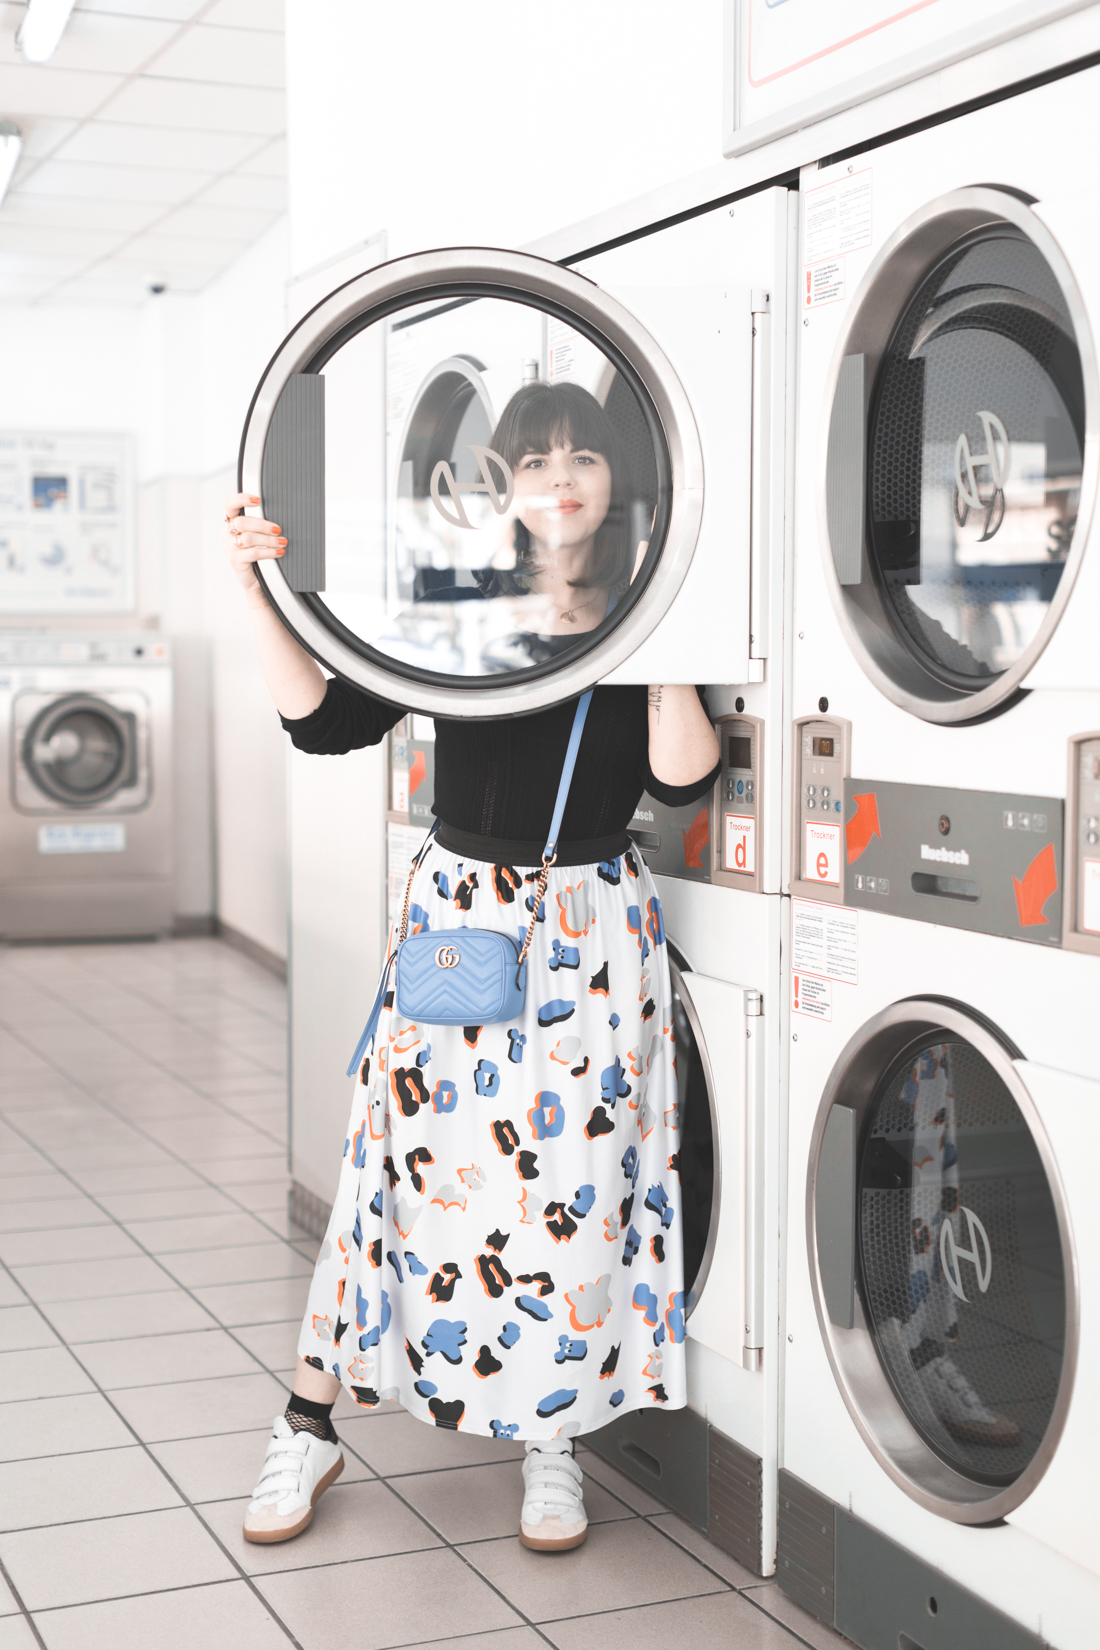 ariel_giles_deacon_blogger_laundromat_photoshoot_copyright_Pauline_Privez_paulinefashionblog_com-14